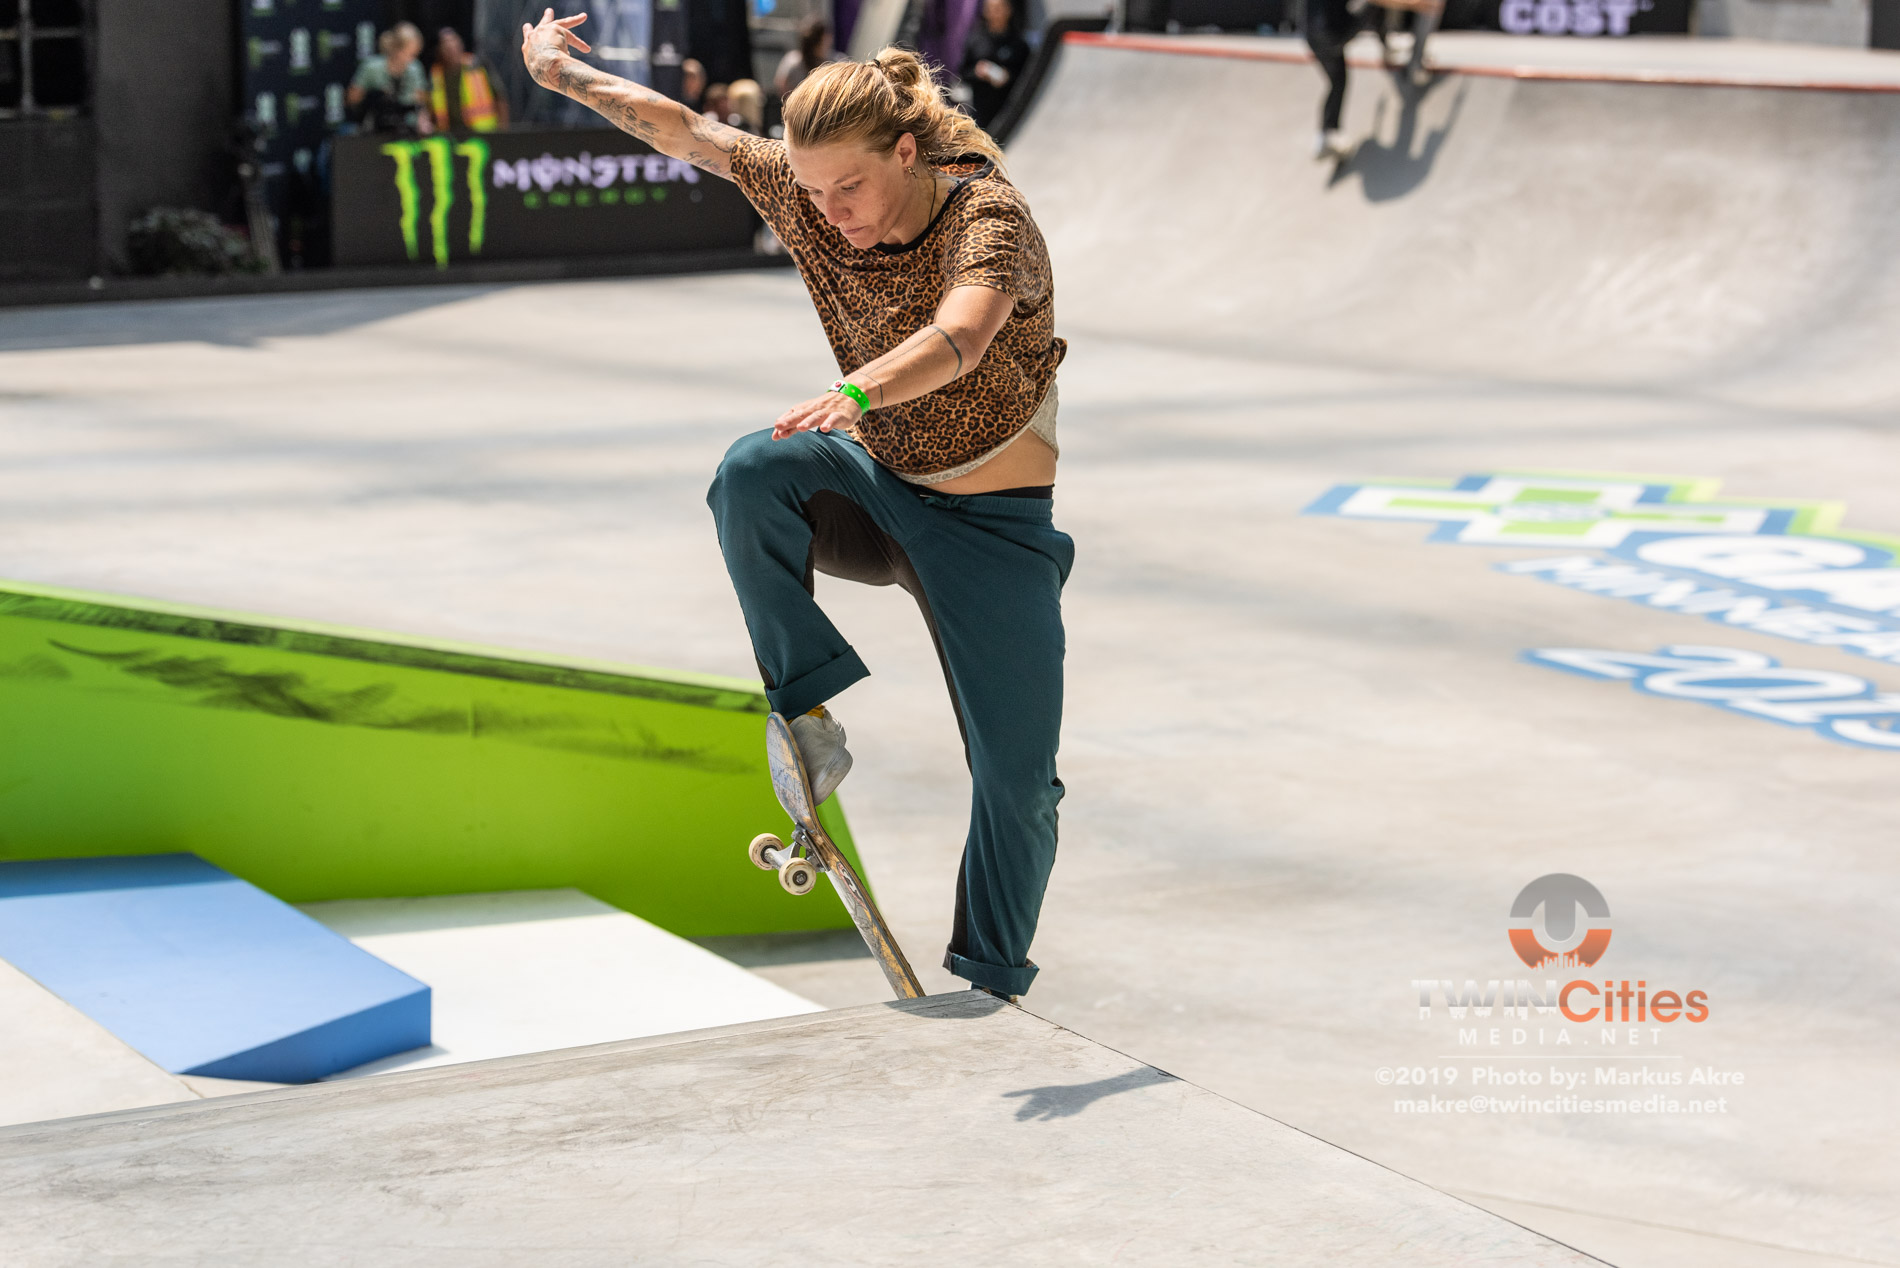 2019-X-Games-Day-4-Women-Skateboard-Street-1